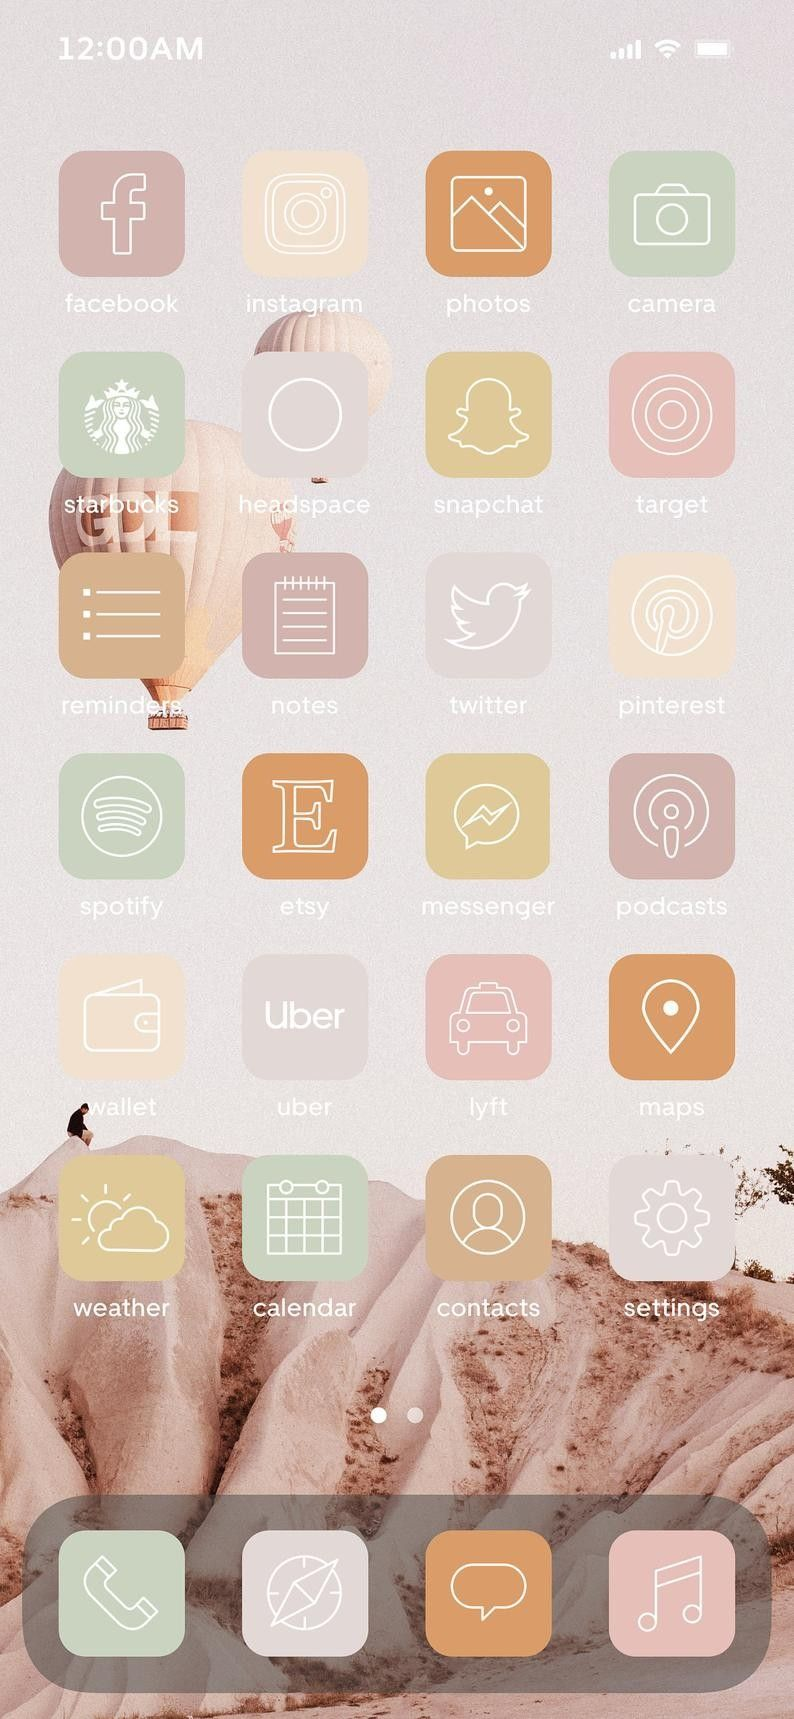 Neutral Iphone Ios14 App Icons 48 Different Icons In 8 Colors High Quality Png Vector Svg In 2020 App Icon Iphone Icon Iphone Organization